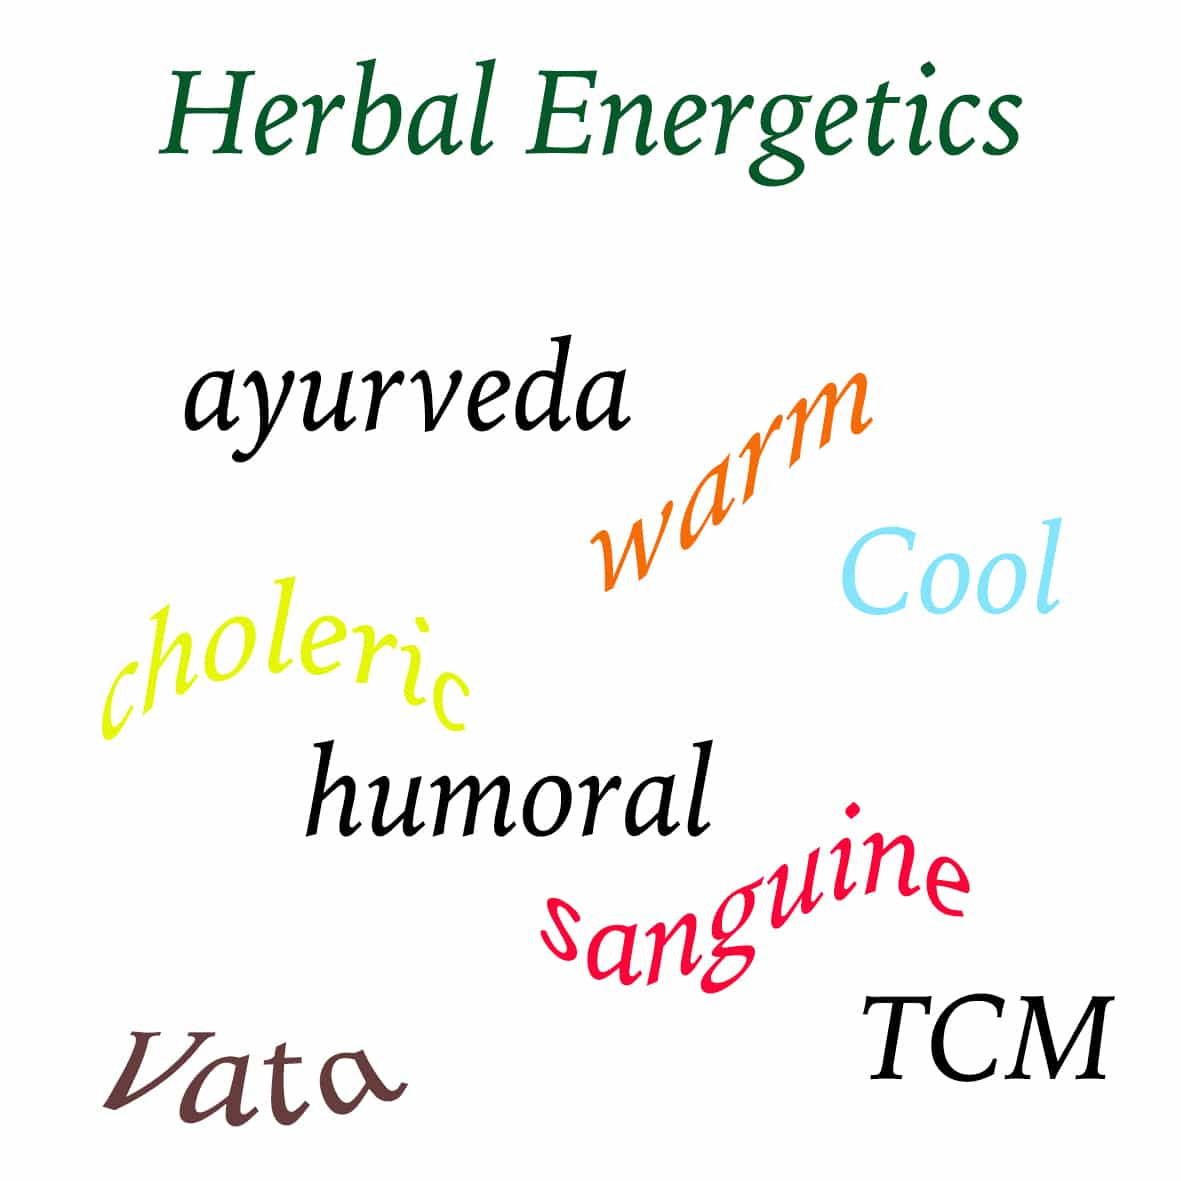 so what is herbal energetics